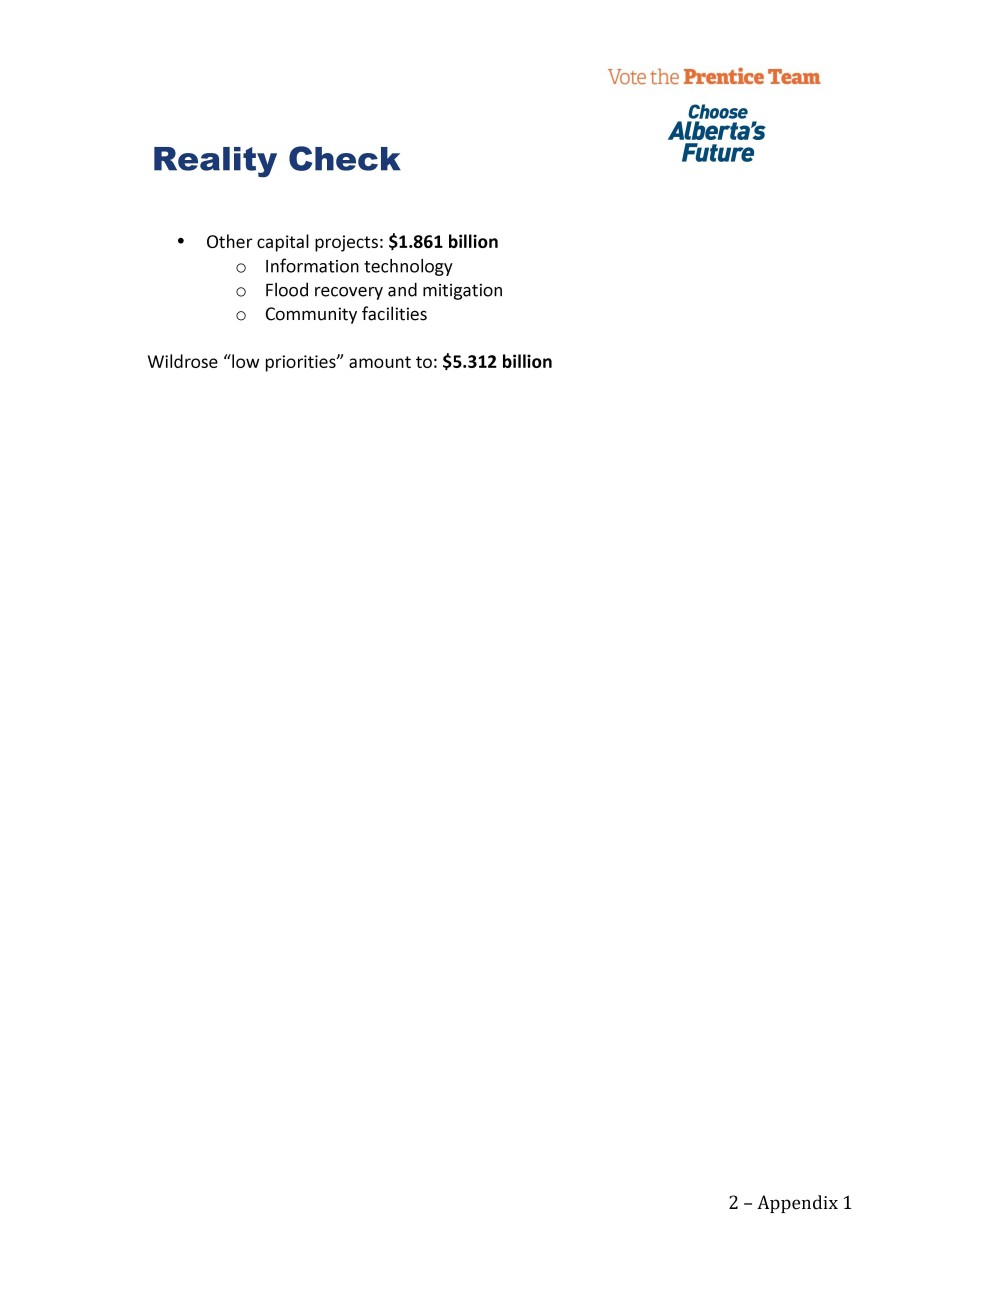 Appendix 1 Backgrounder Wildrose Capital Plan Reality Check_Page_2